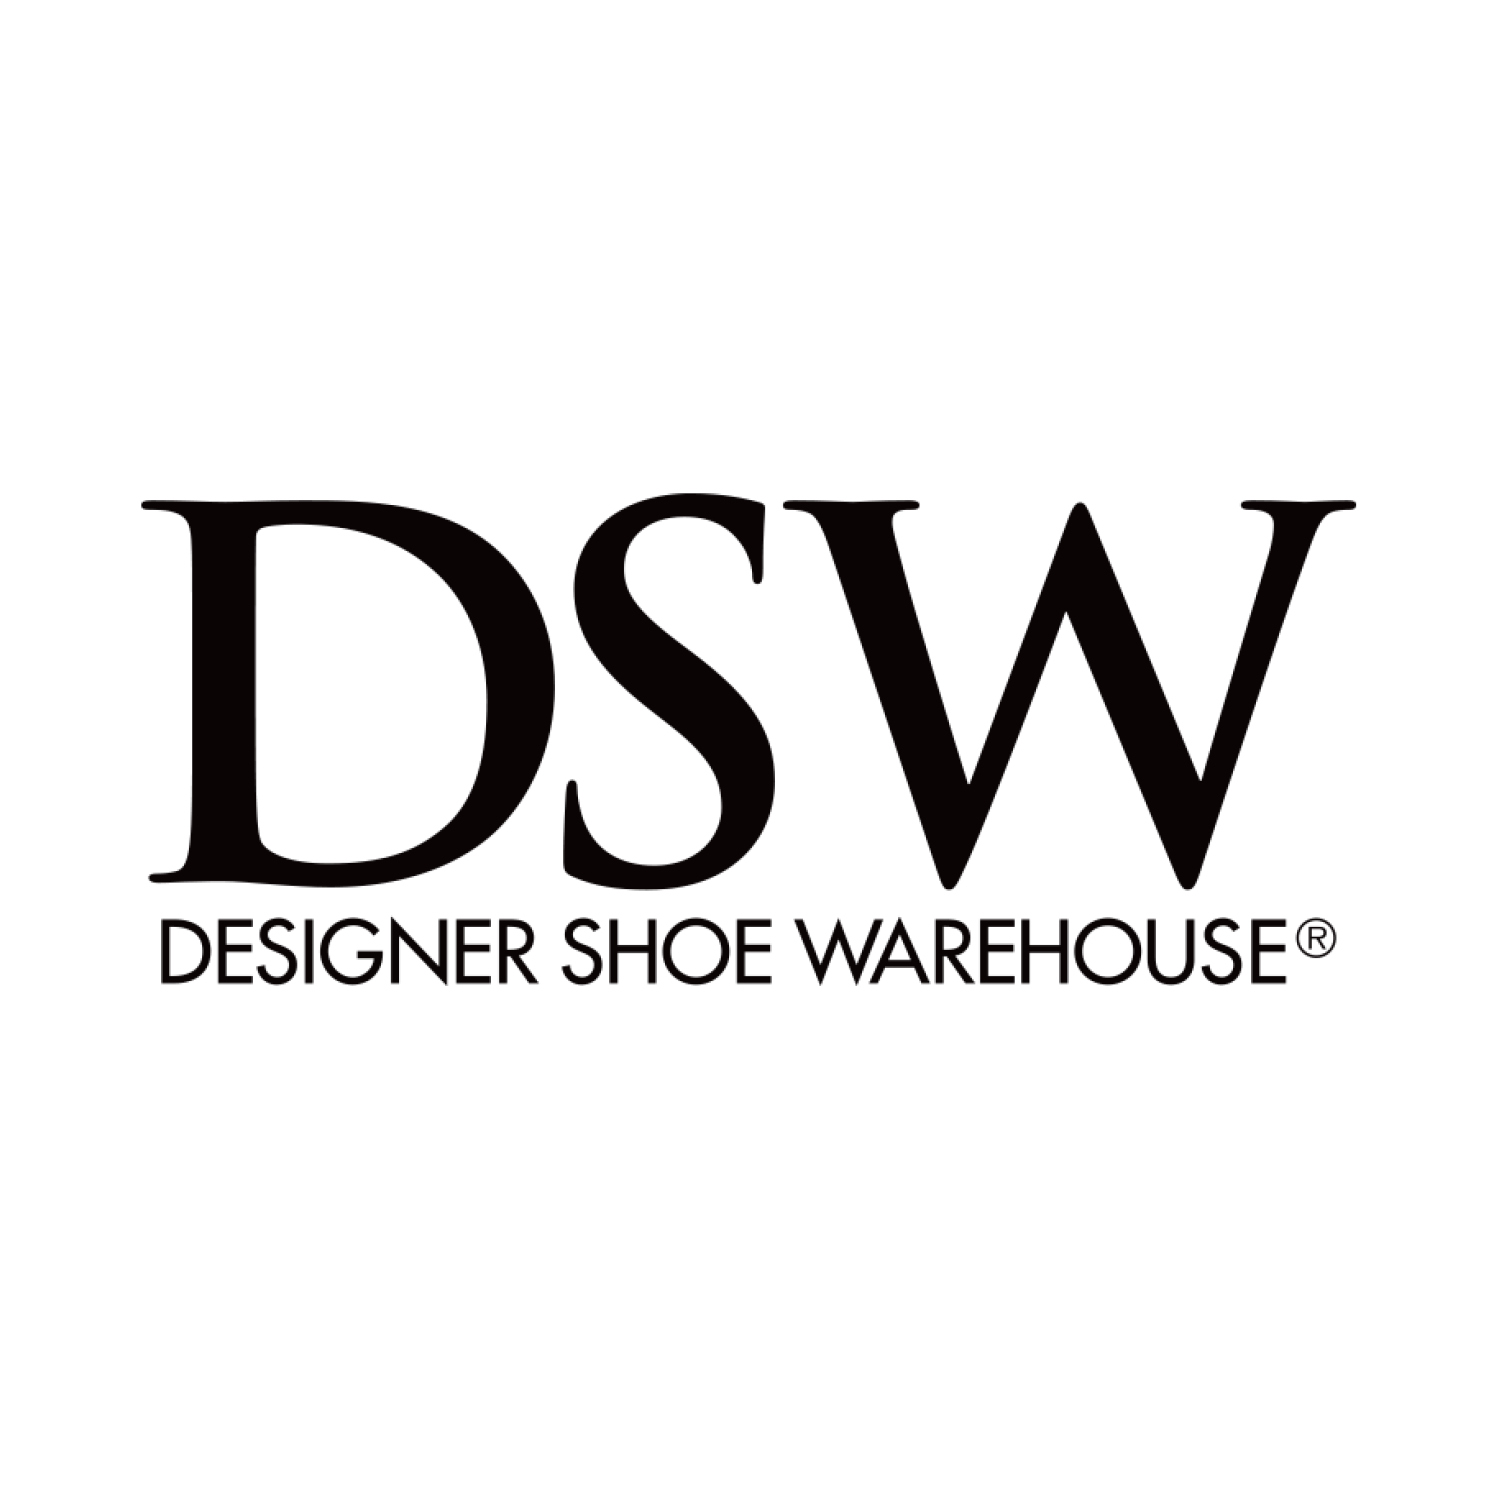 DSW Endcap - Price Points: Accessory $1.99 - FR